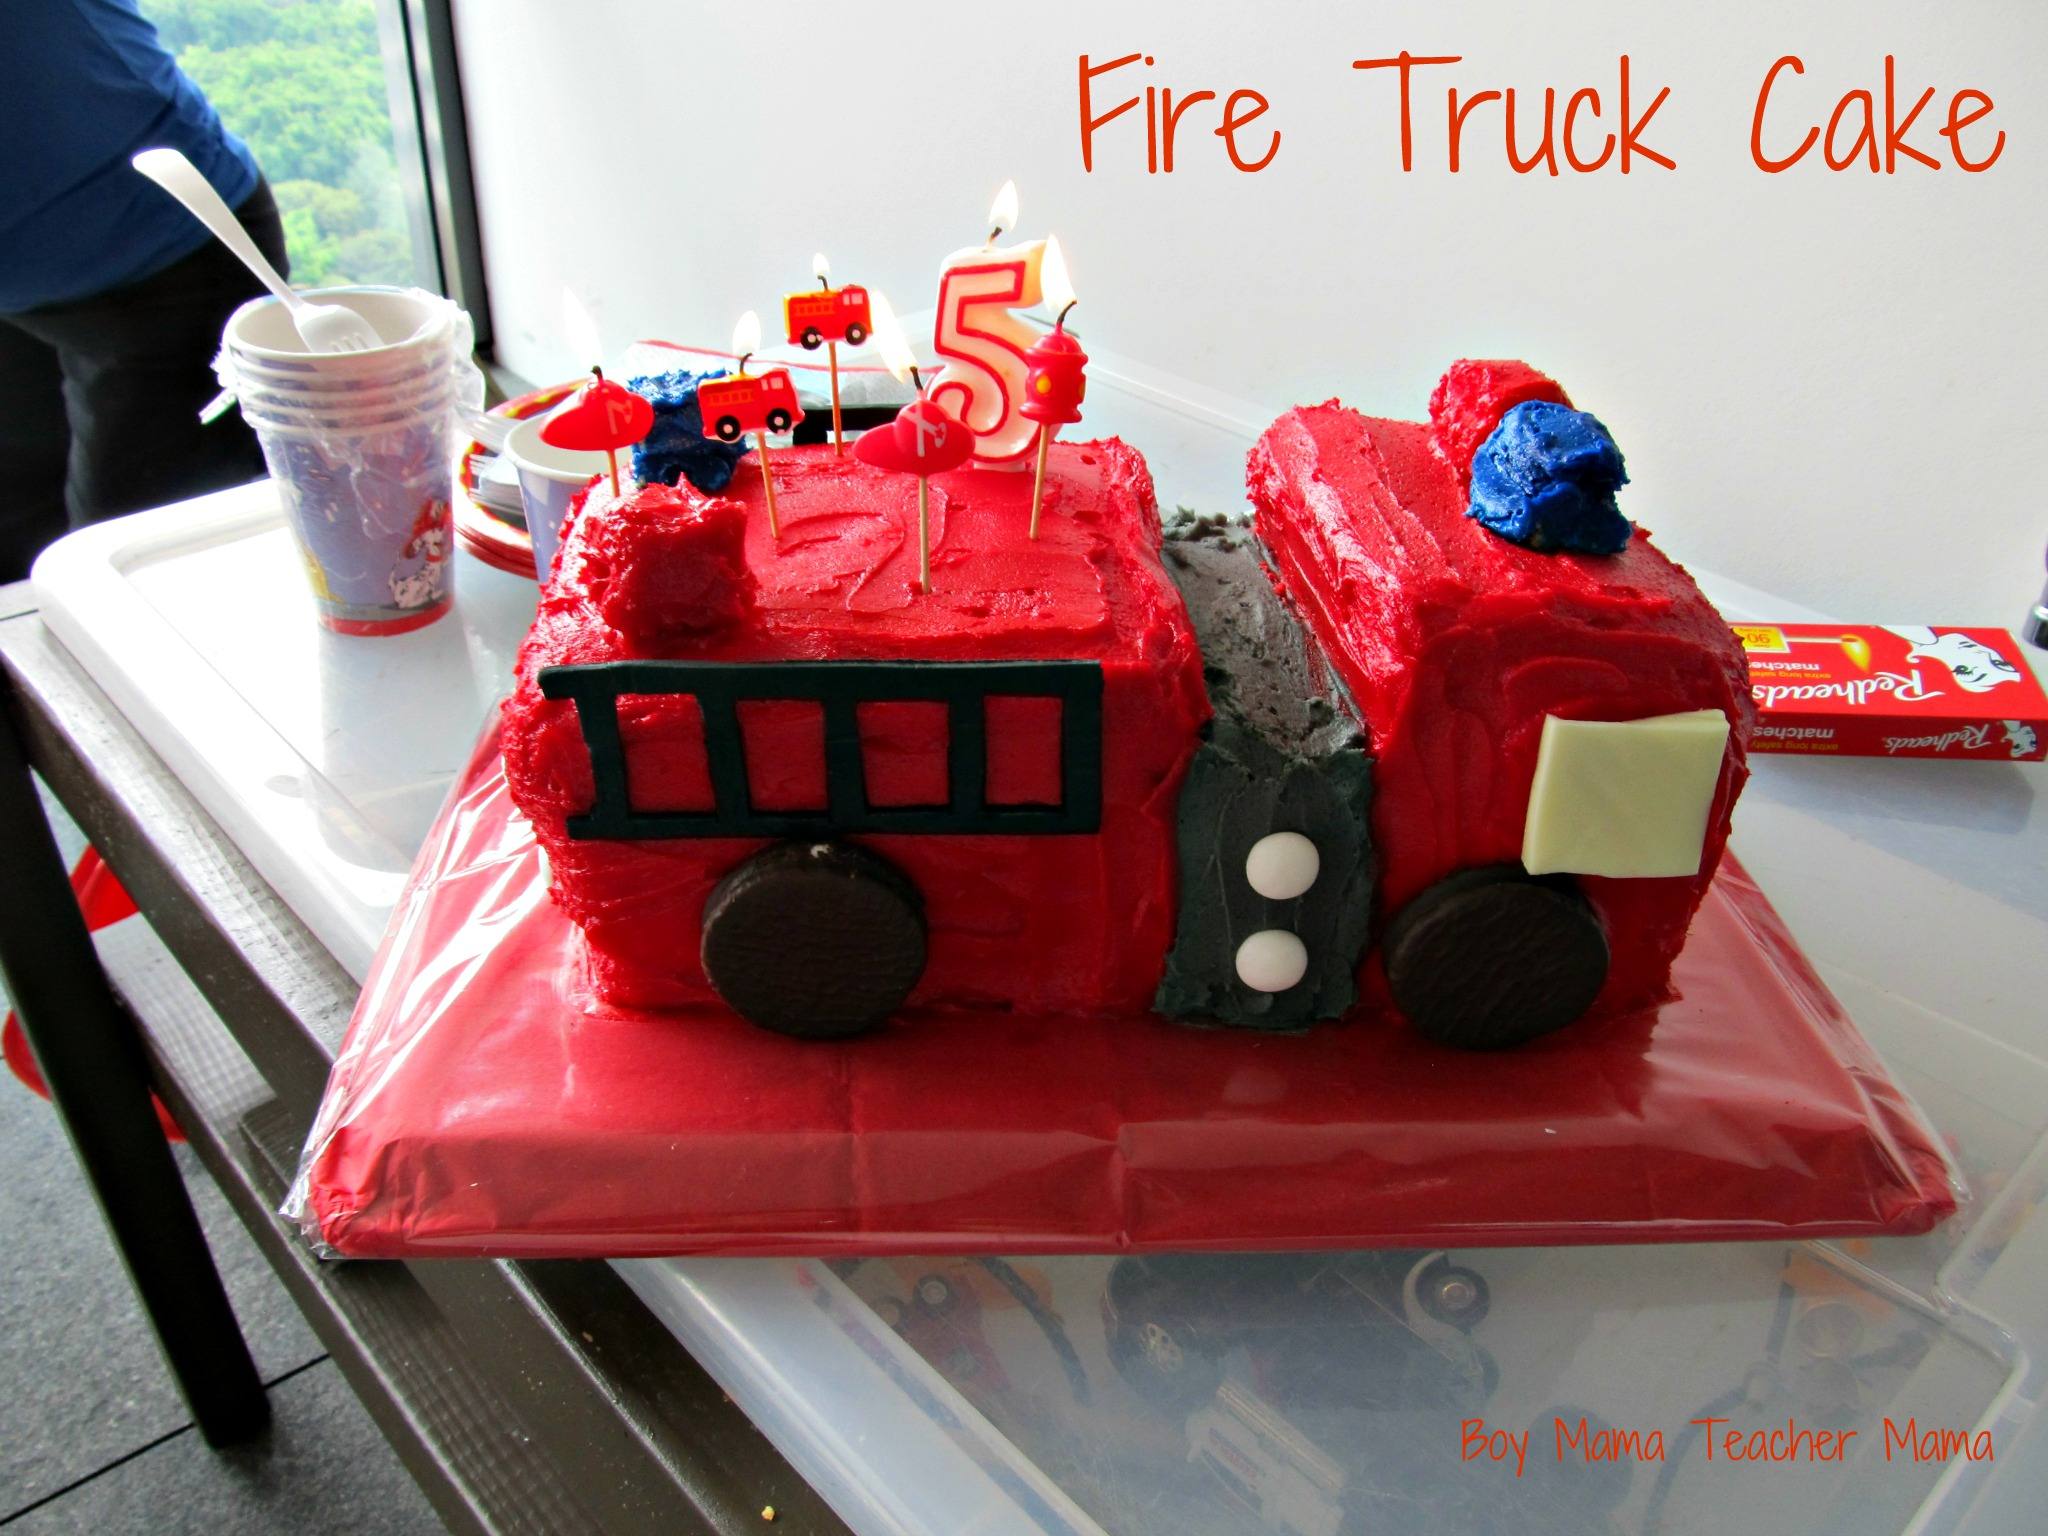 Cake Decorating How To Make Fire : Boy Mama: A Firefighter Birthday Party - Boy Mama Teacher Mama